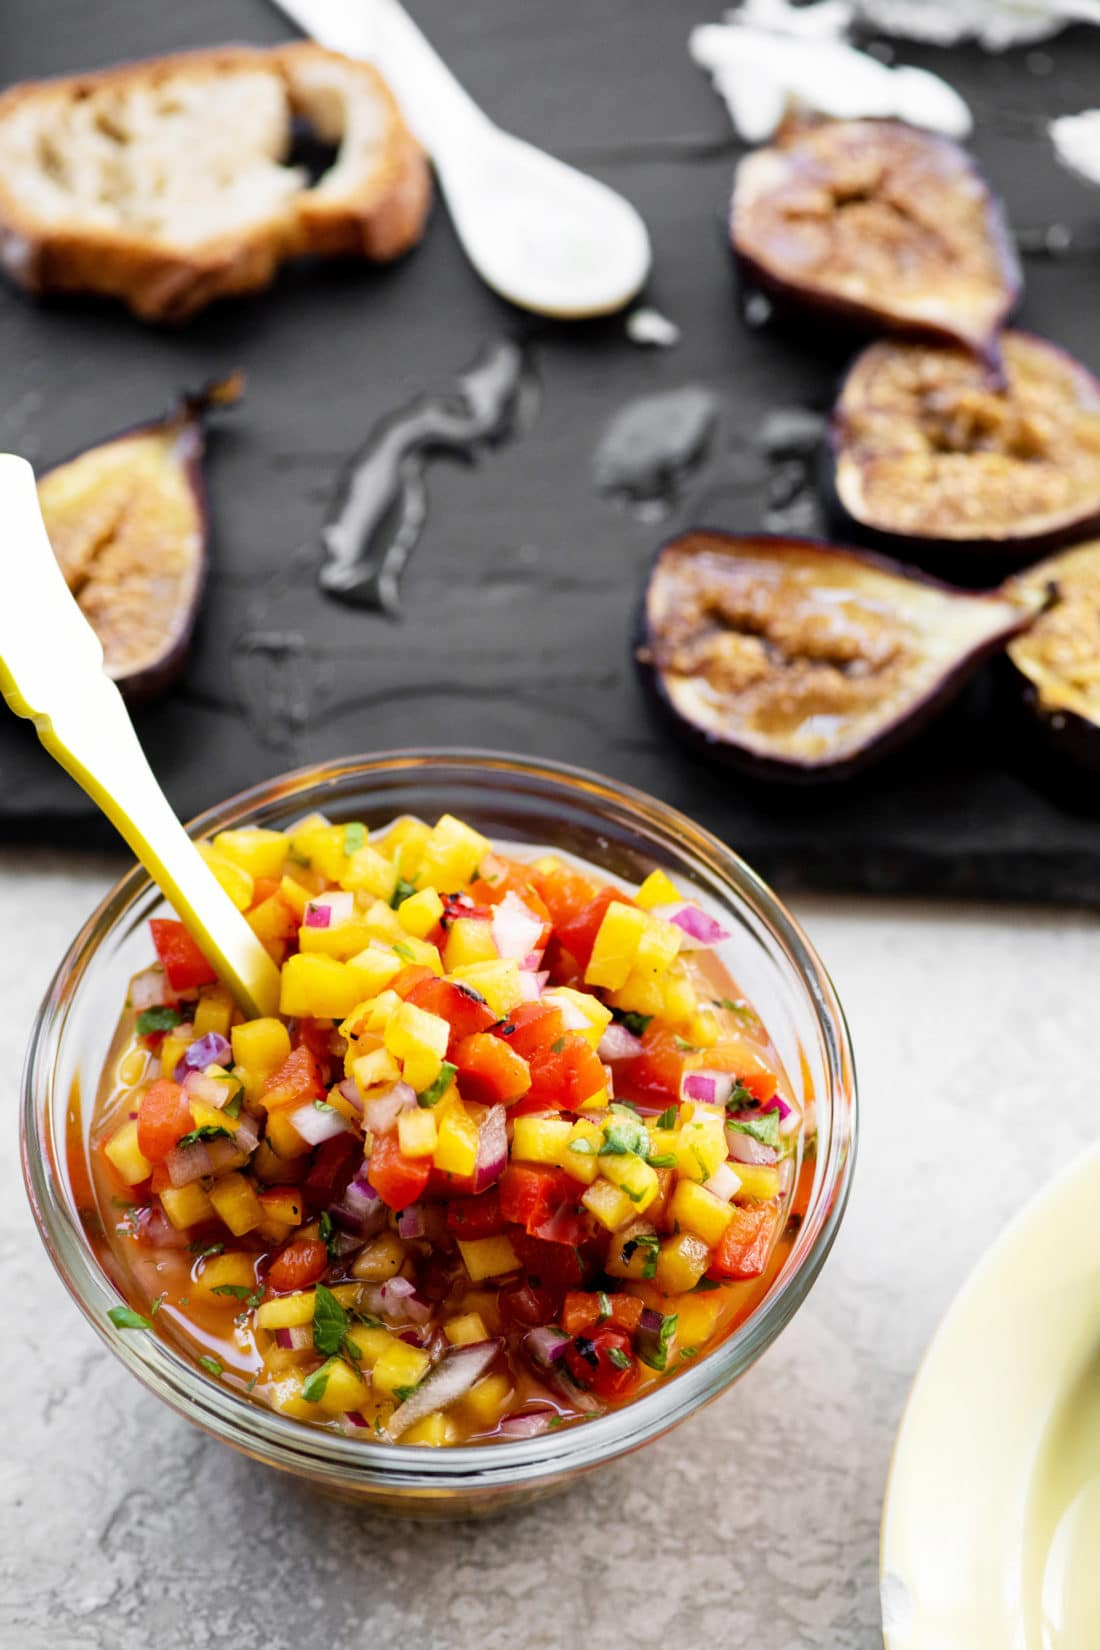 Honey Roasted Figs with Peach and Roasted Red Pepper Salsa / Katie Workman / themom100.com / Photo by Cheyenne Cohen